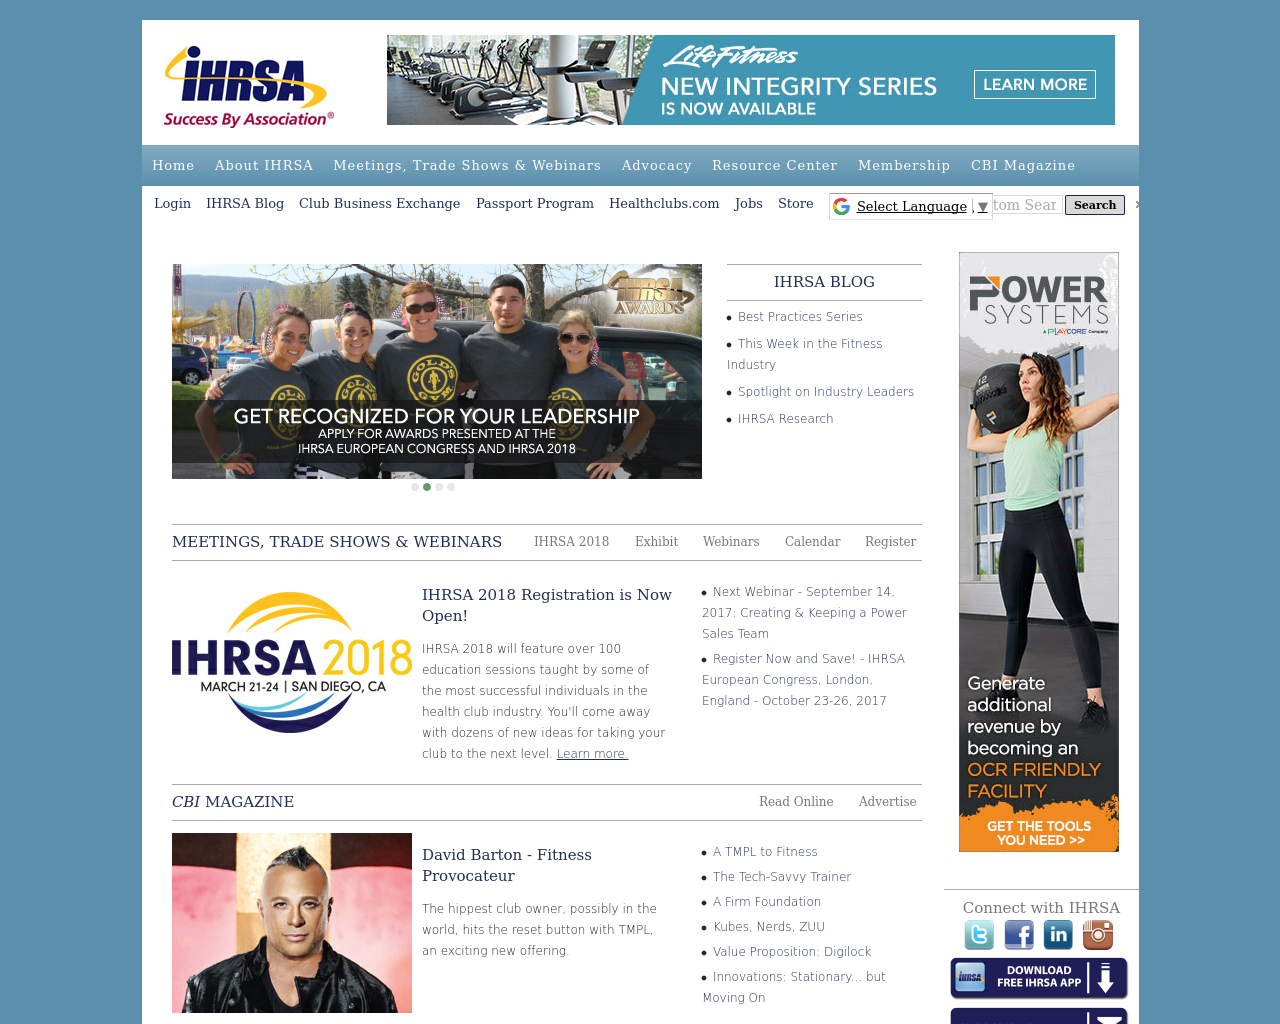 IHRSA-Success-By-Association-Advertising-Reviews-Pricing